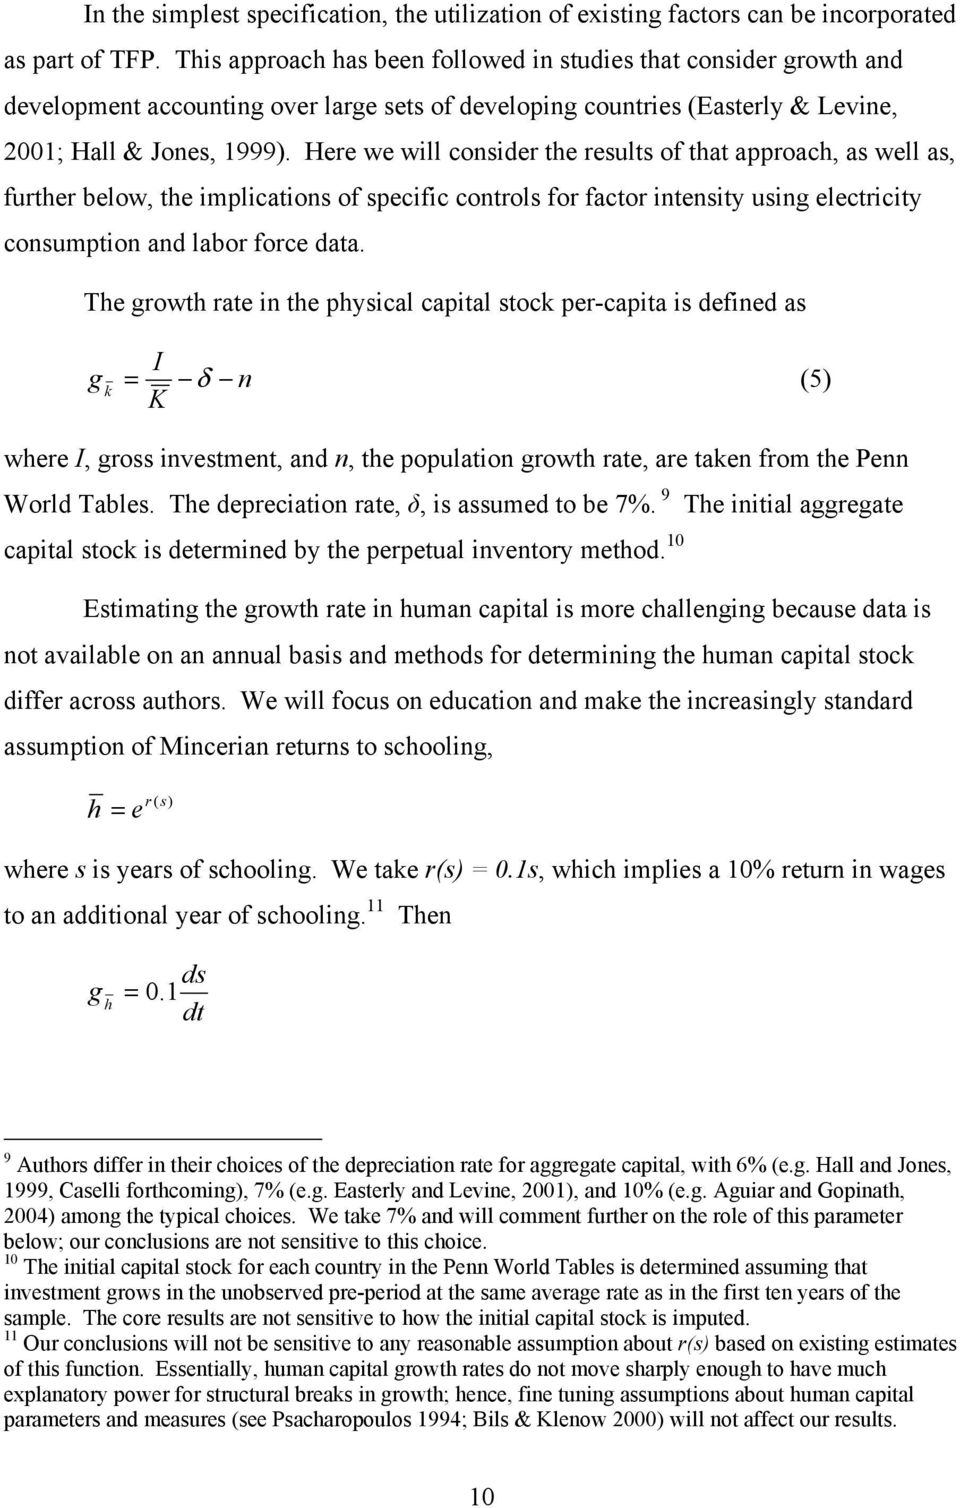 Here we will consider the results of that approach, as well as, further below, the implications of specific controls for factor intensity using electricity consumption and labor force data.